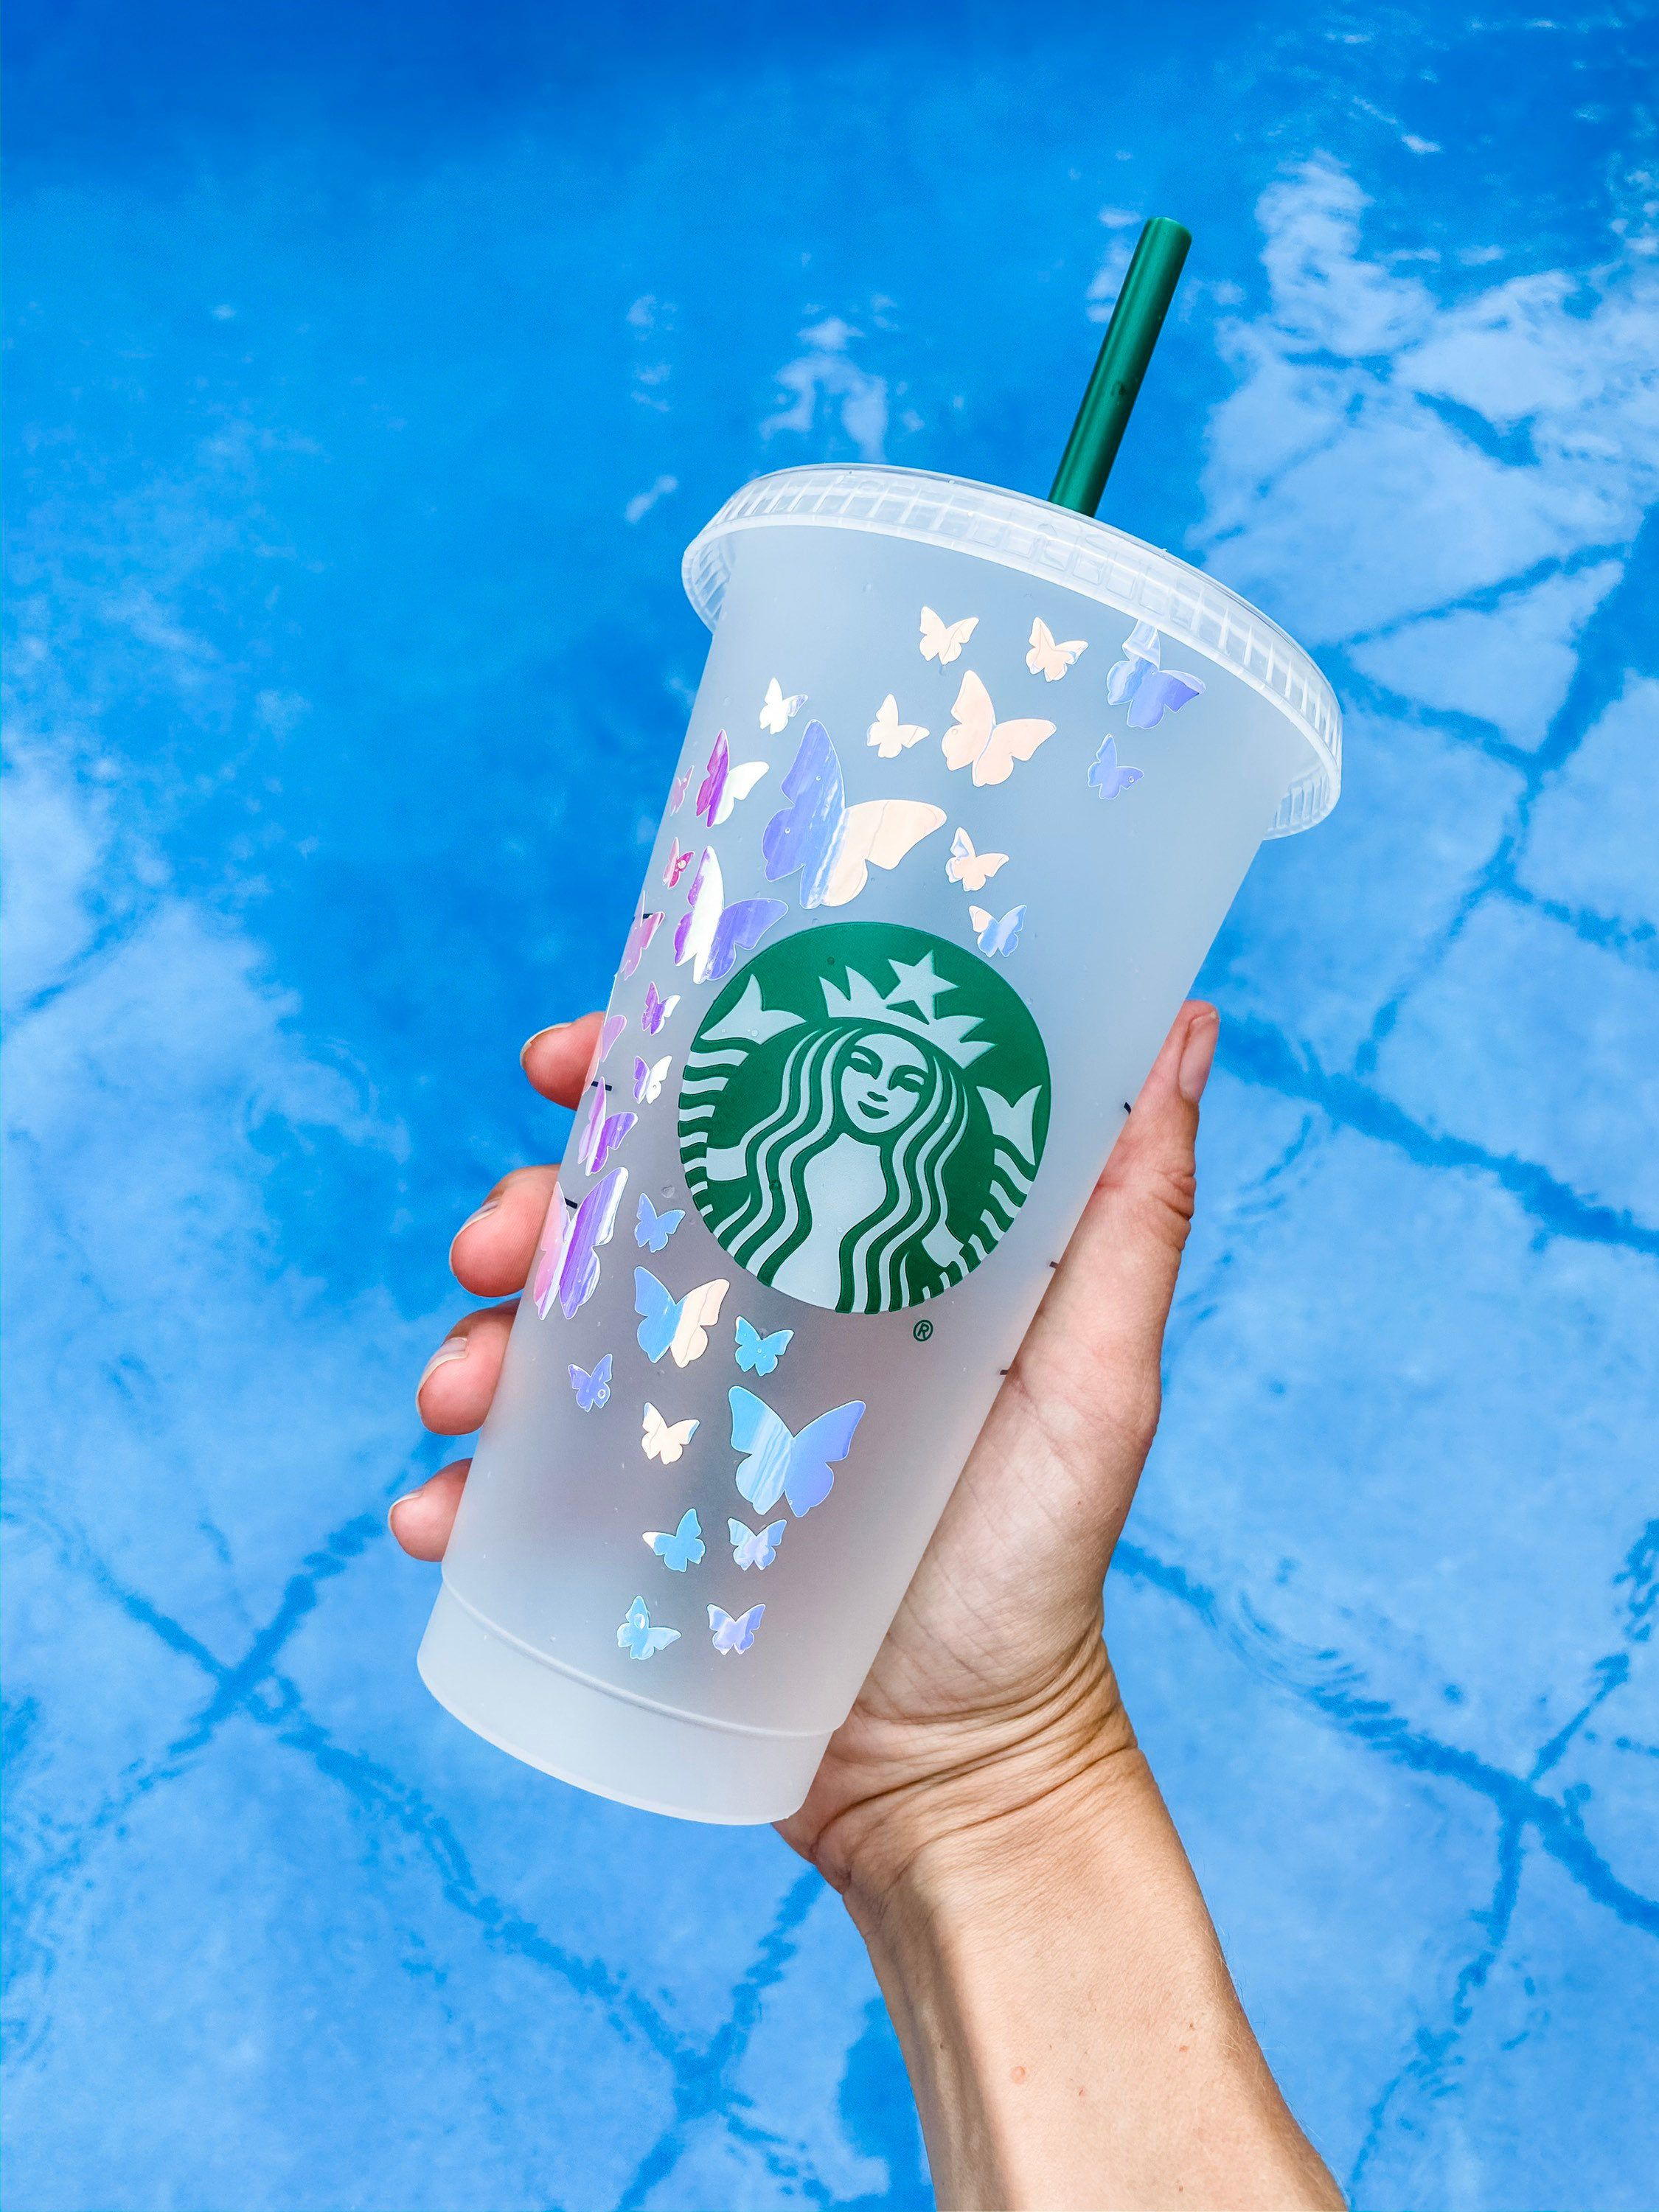 Holographic Butterflies Personalized Reusable Starbucks Cup Personalized Butterflies Starbucks Cold Cup Starbucks Venti Cup